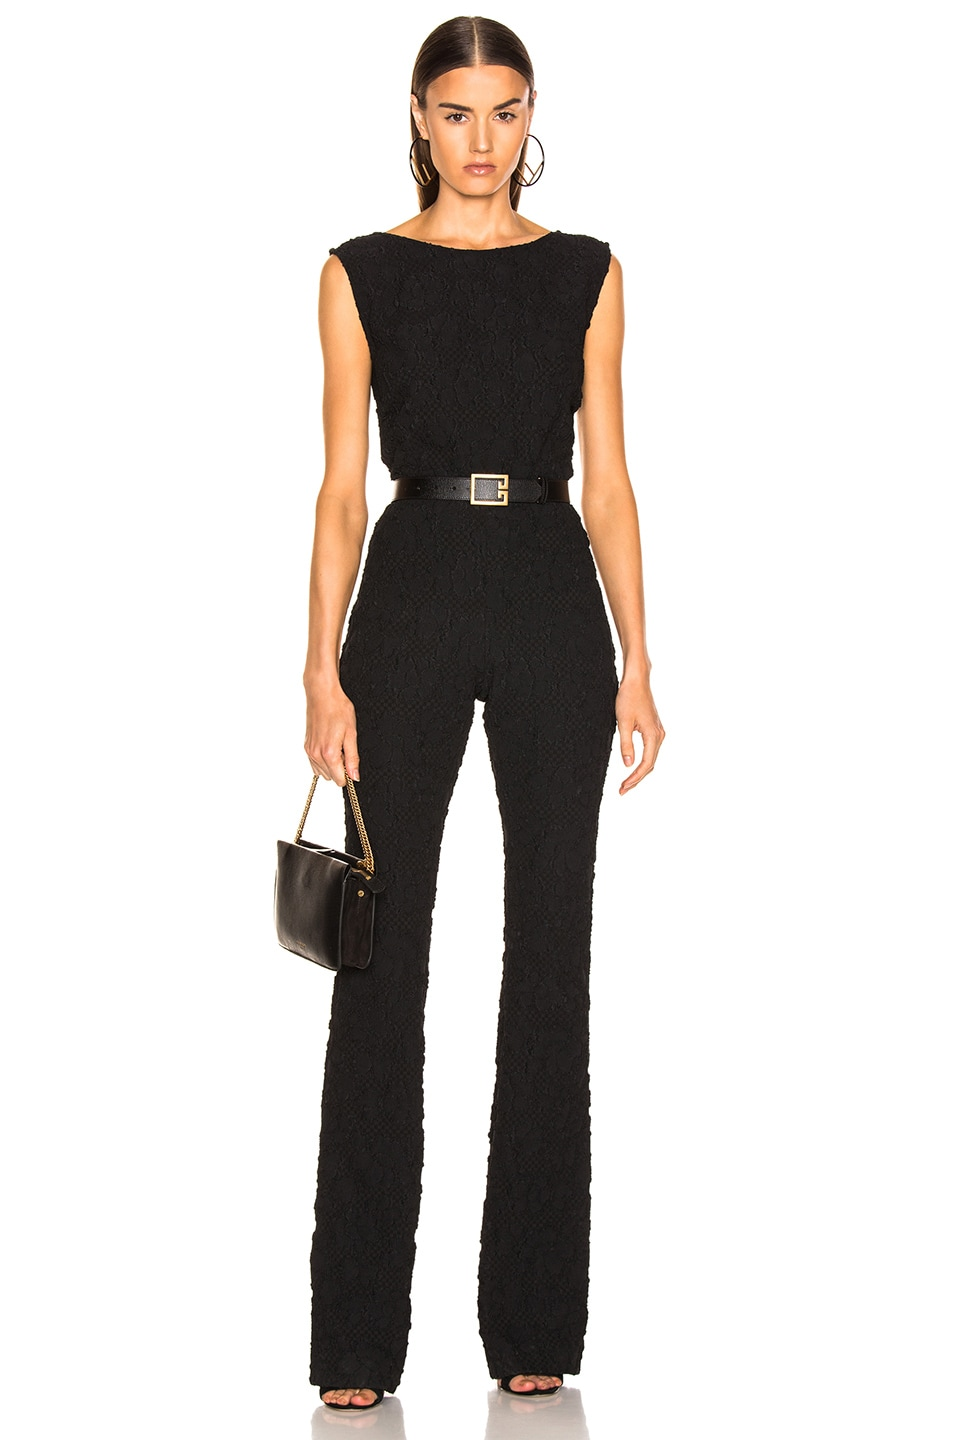 Obliging Womans Black Jumpsuit Velvet Clothing, Shoes, Accessories